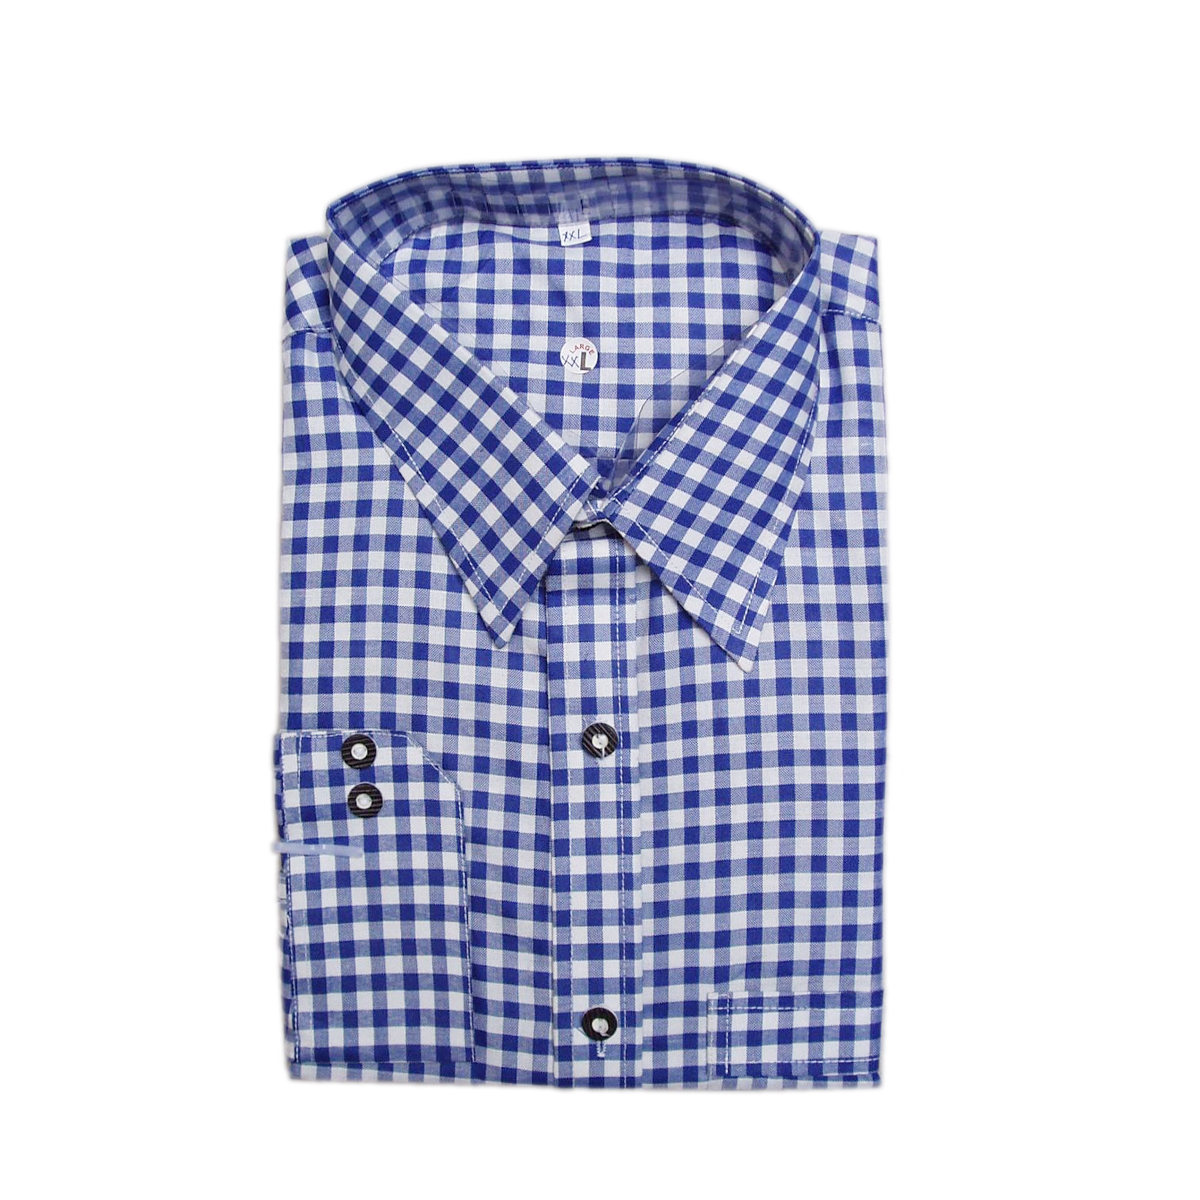 BLUE MENS CHECK SHIRT